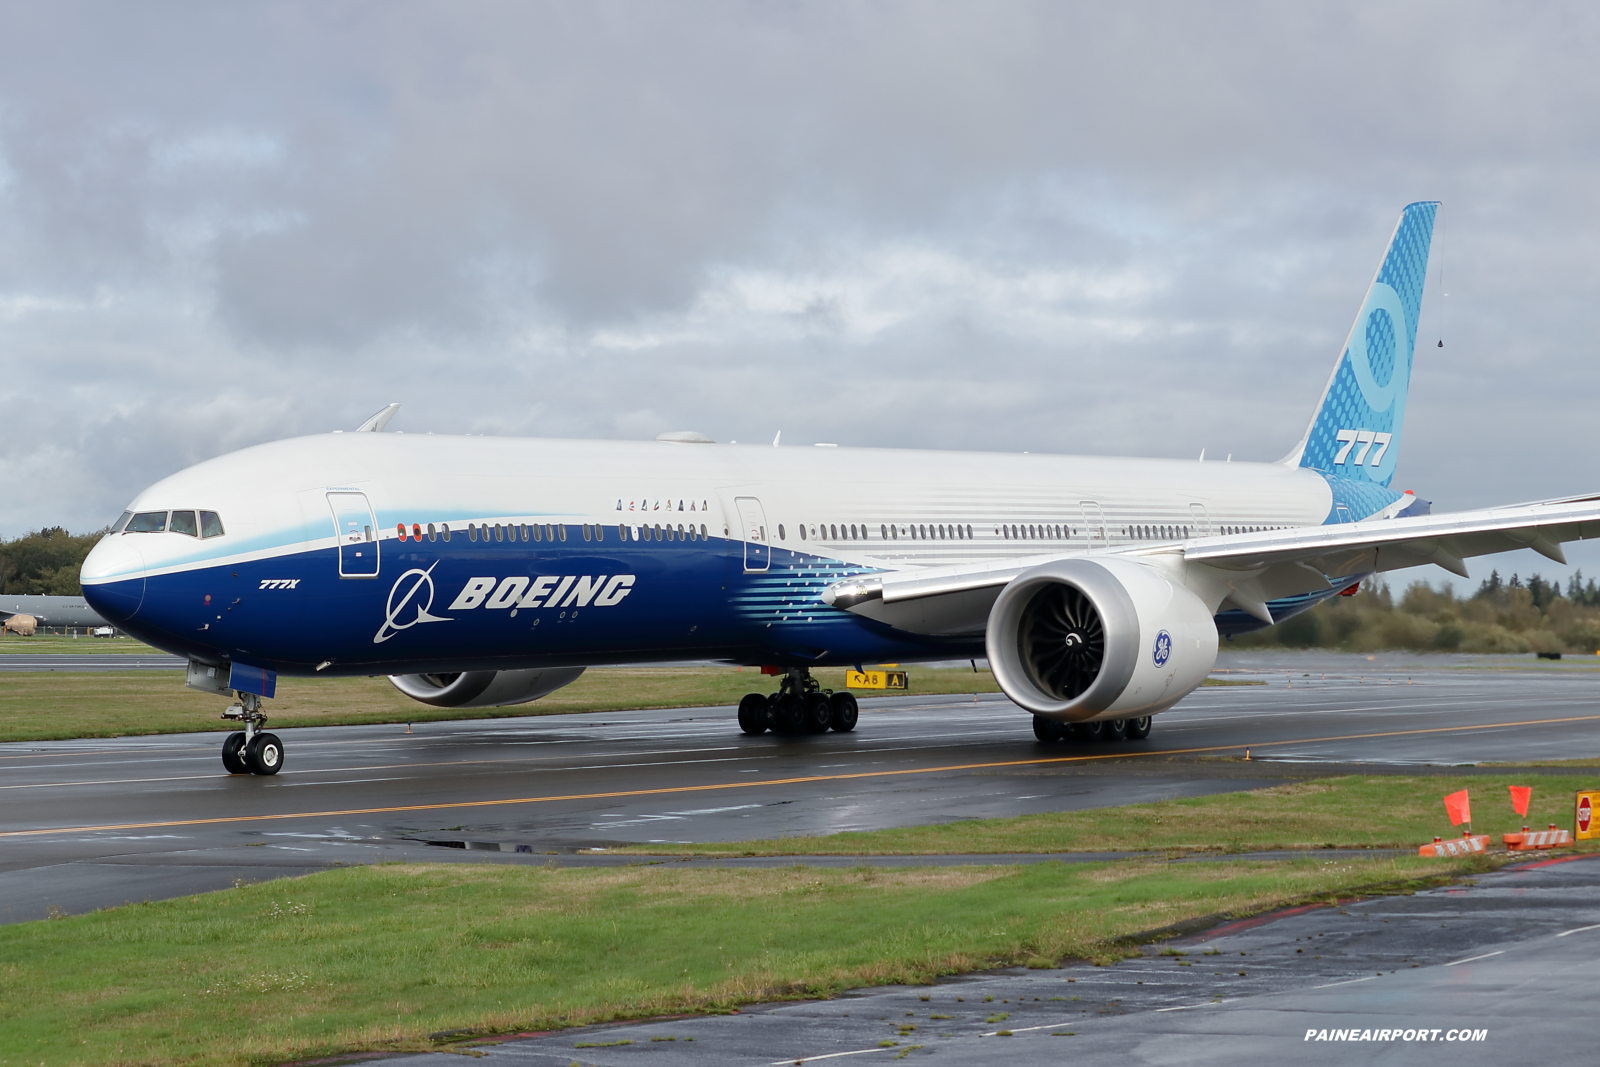 777-9 N779XW at KPAE Paine Field